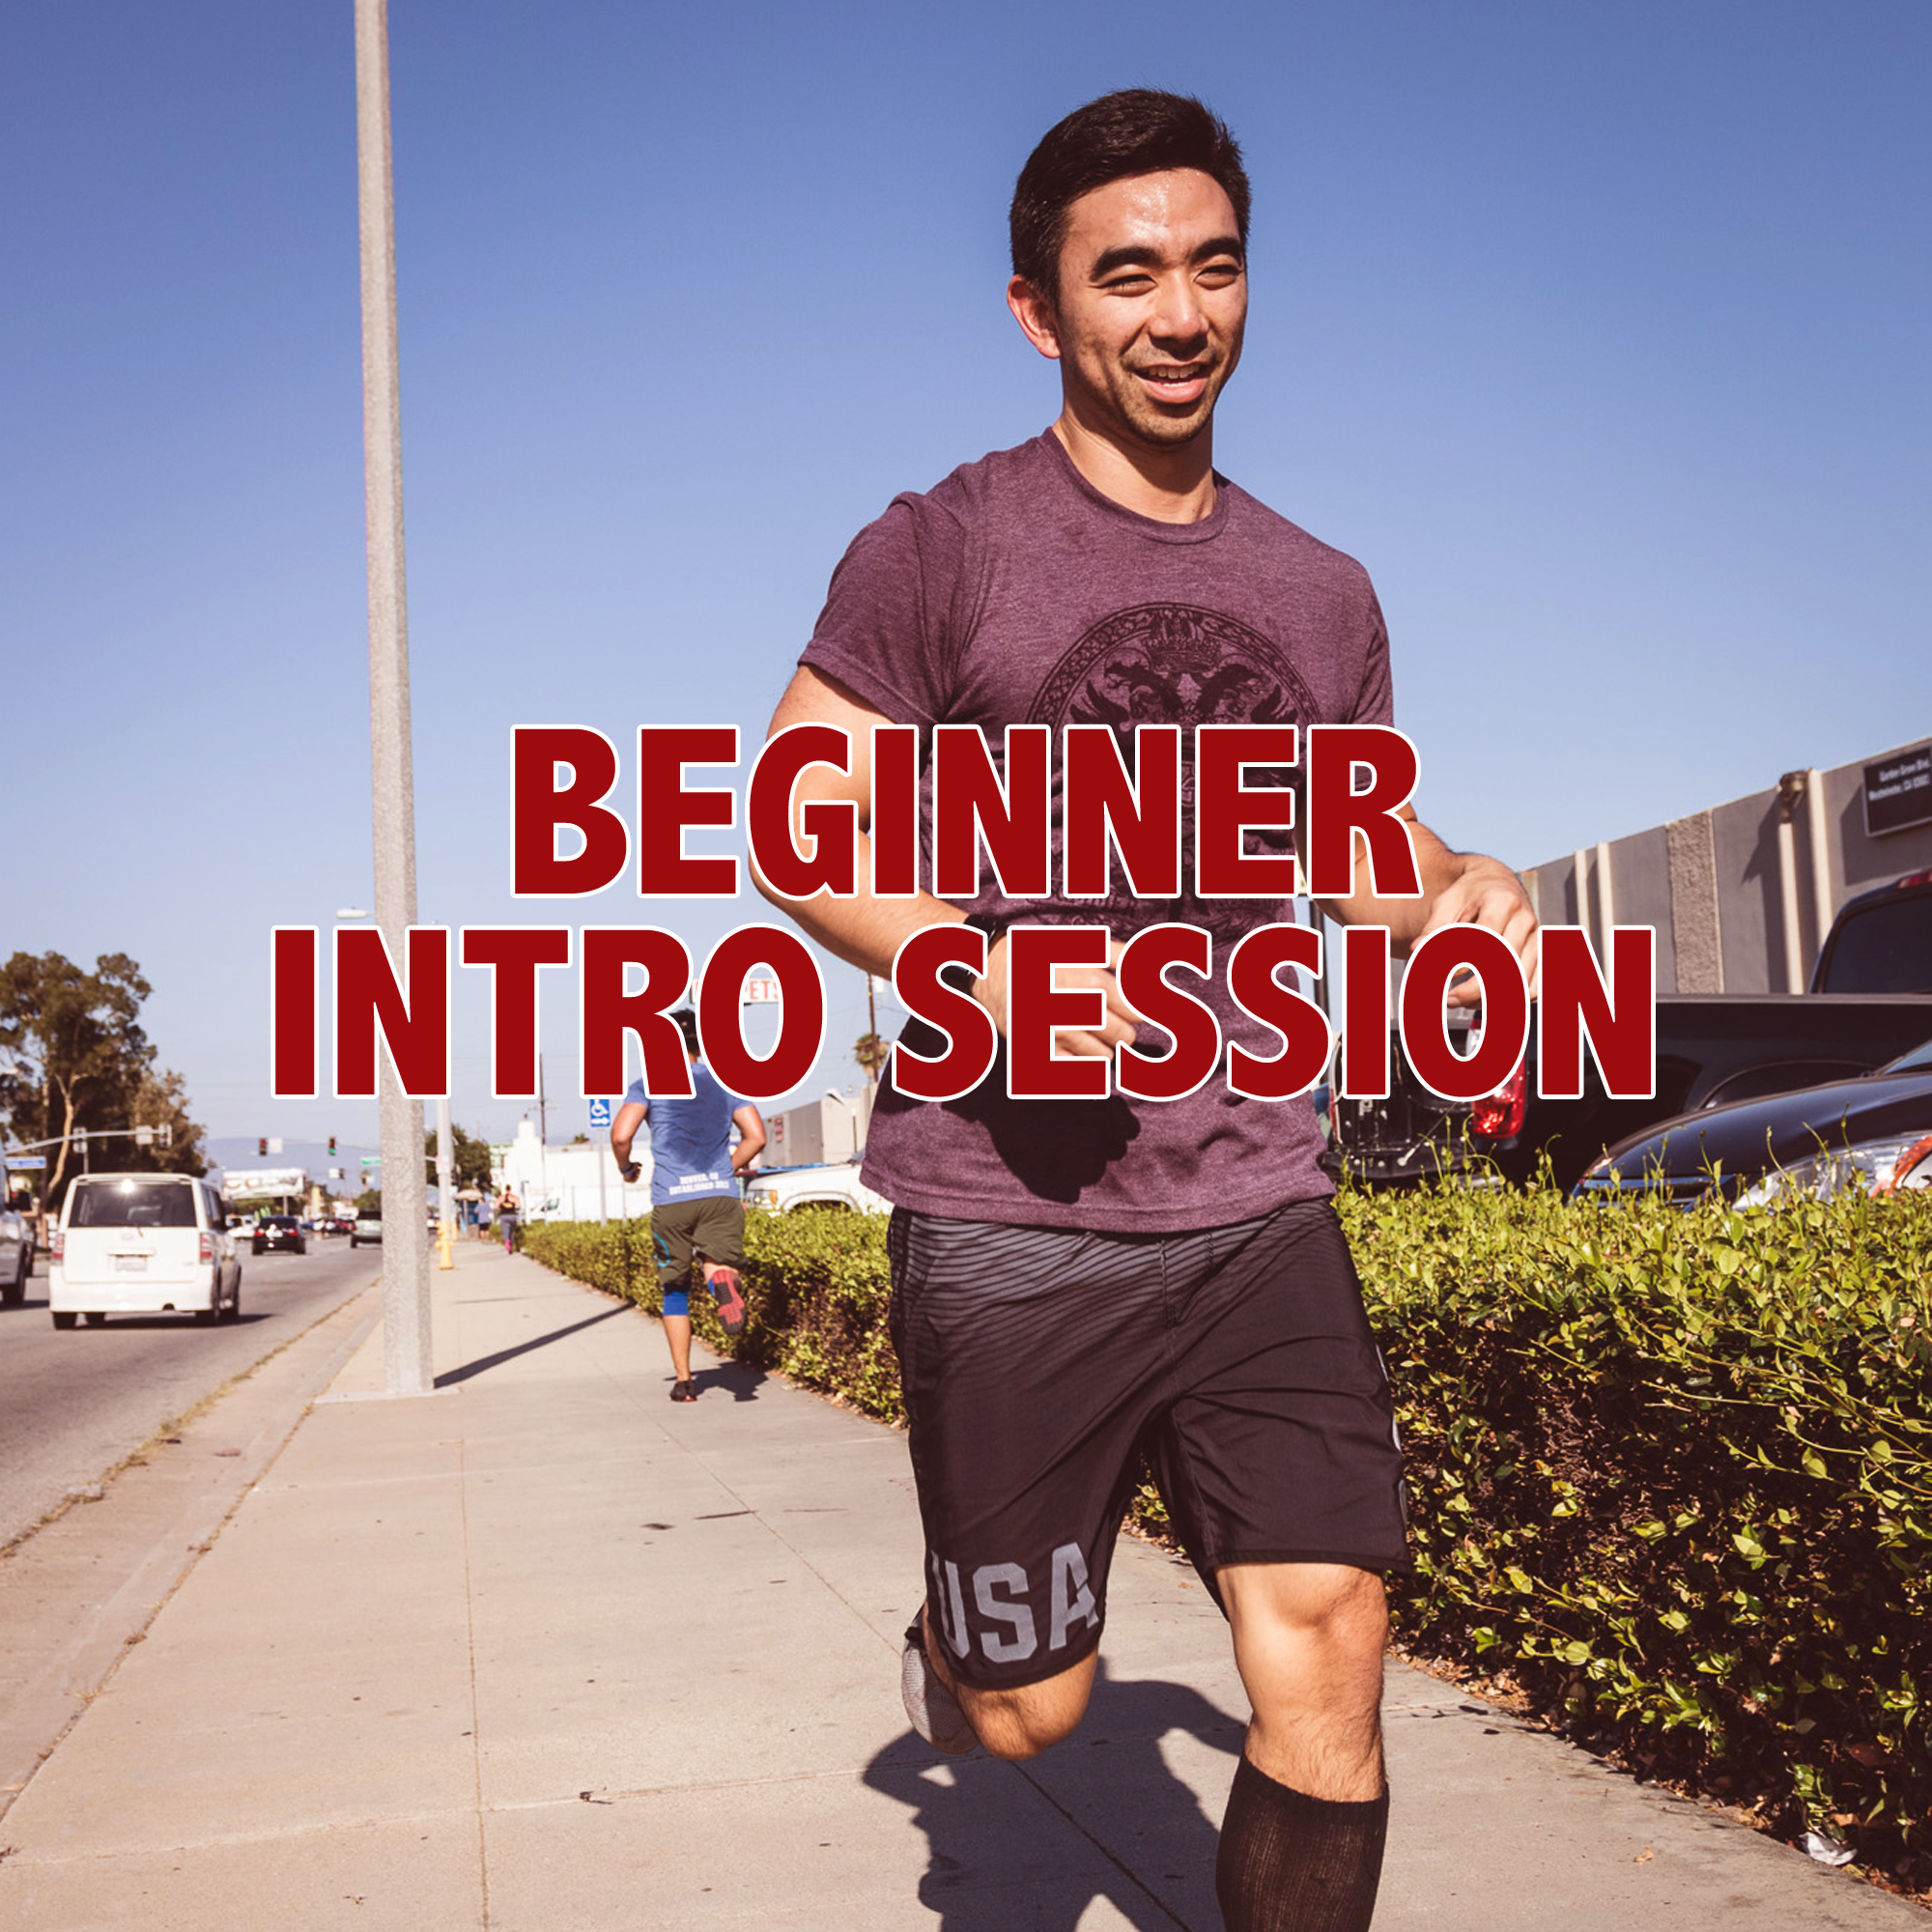 Beginners Intro Session.jpg